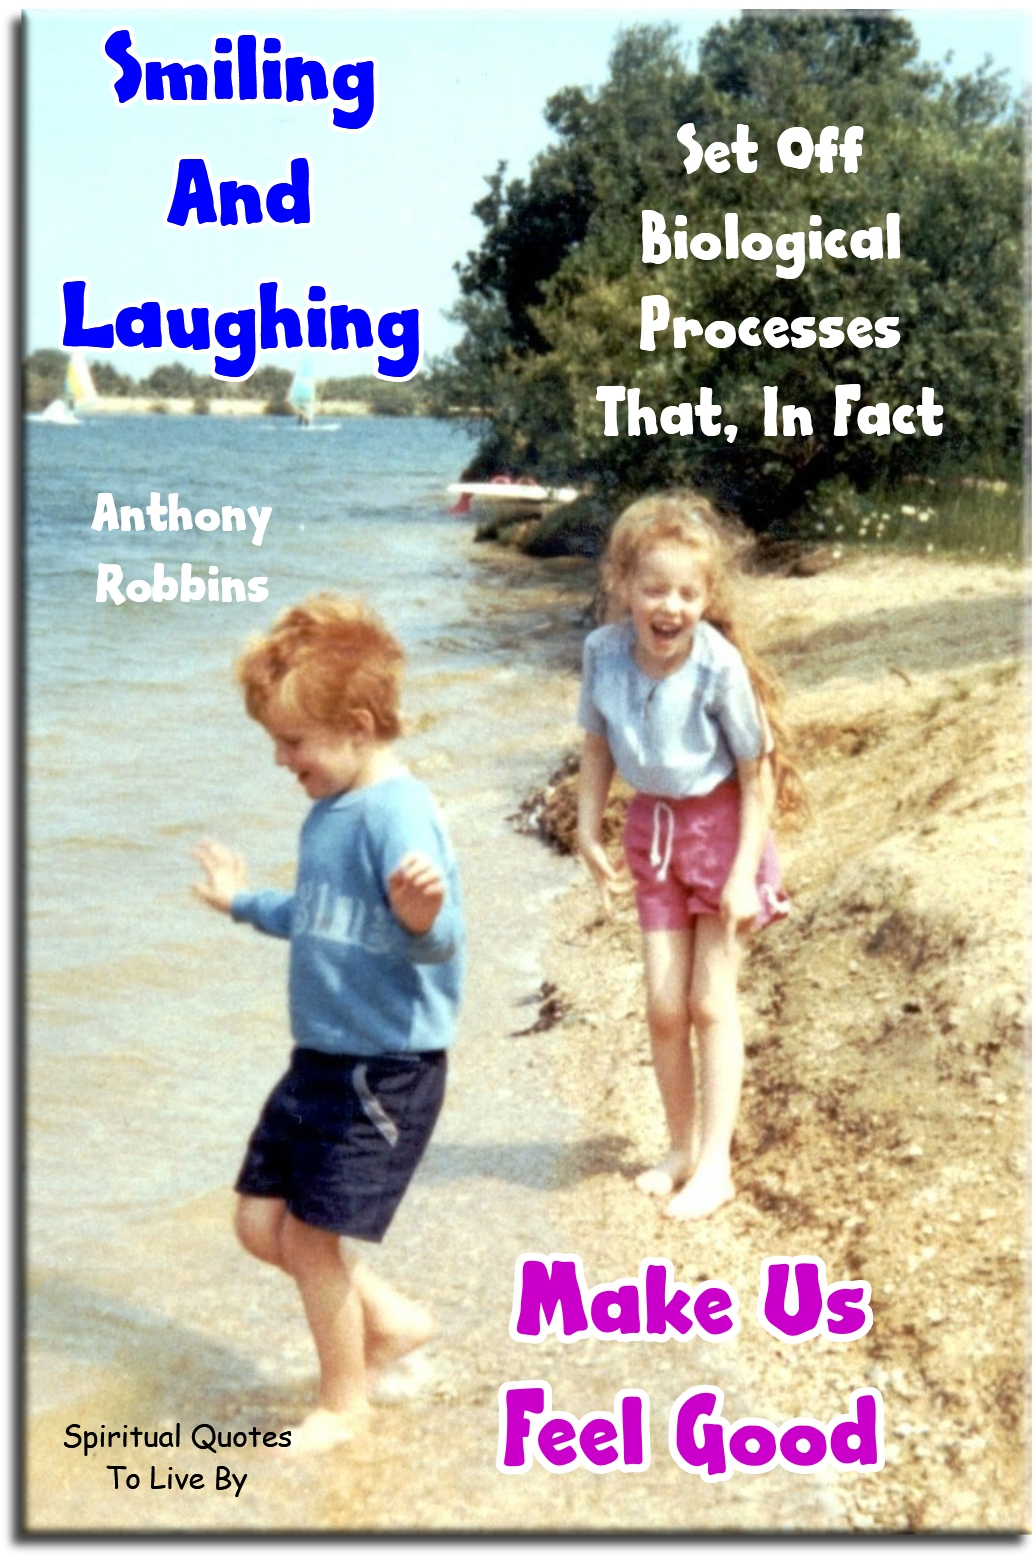 Anthony Robbins quote: Smiling and laughing set off biological processes that, in fact, make us feel good. Spiritual Quotes To Live By